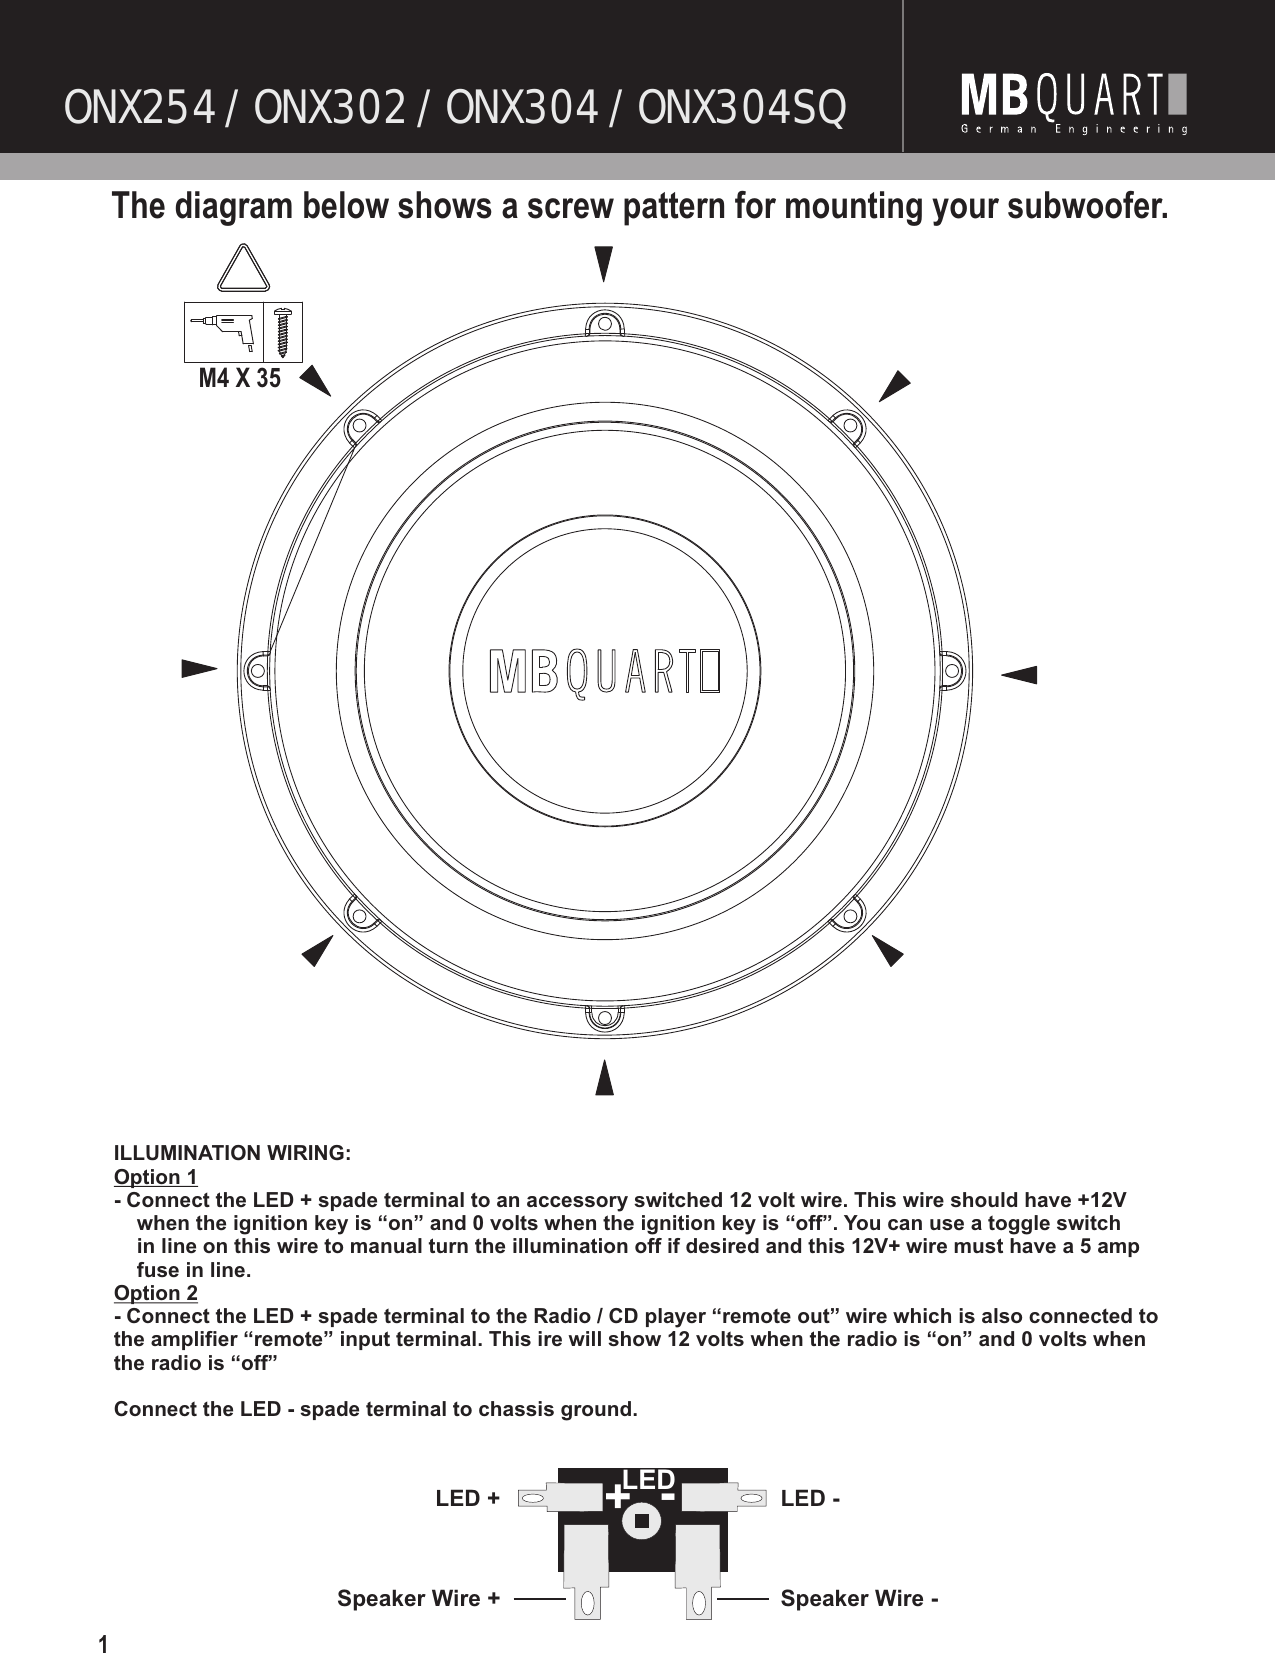 Mb Quart Subwoofer 2 Ohm Wiring Diagram Series Parallel Speaker For A Dual Voice Coil Onx254 Users Manual 2010 Onyx Front Cover On